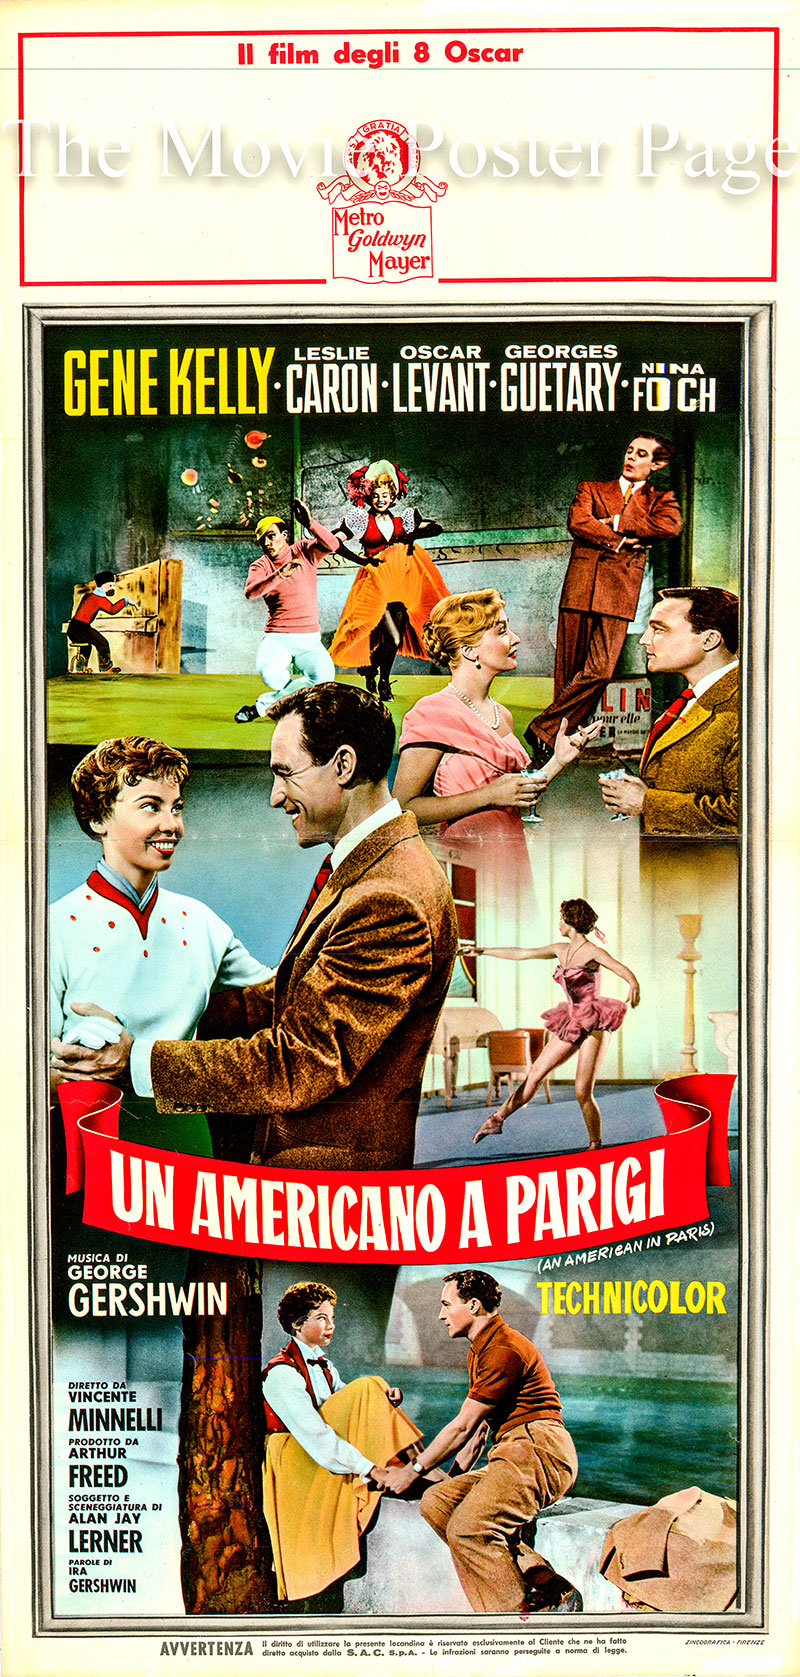 Pictured is an Italian locandina promotional poster for the 1951 Vincente Minnelli film <i>An American in Paris</i> based on story and screenplay by Alan Jay Lerner and starring Gene Kelly as Jerry Mulligan.